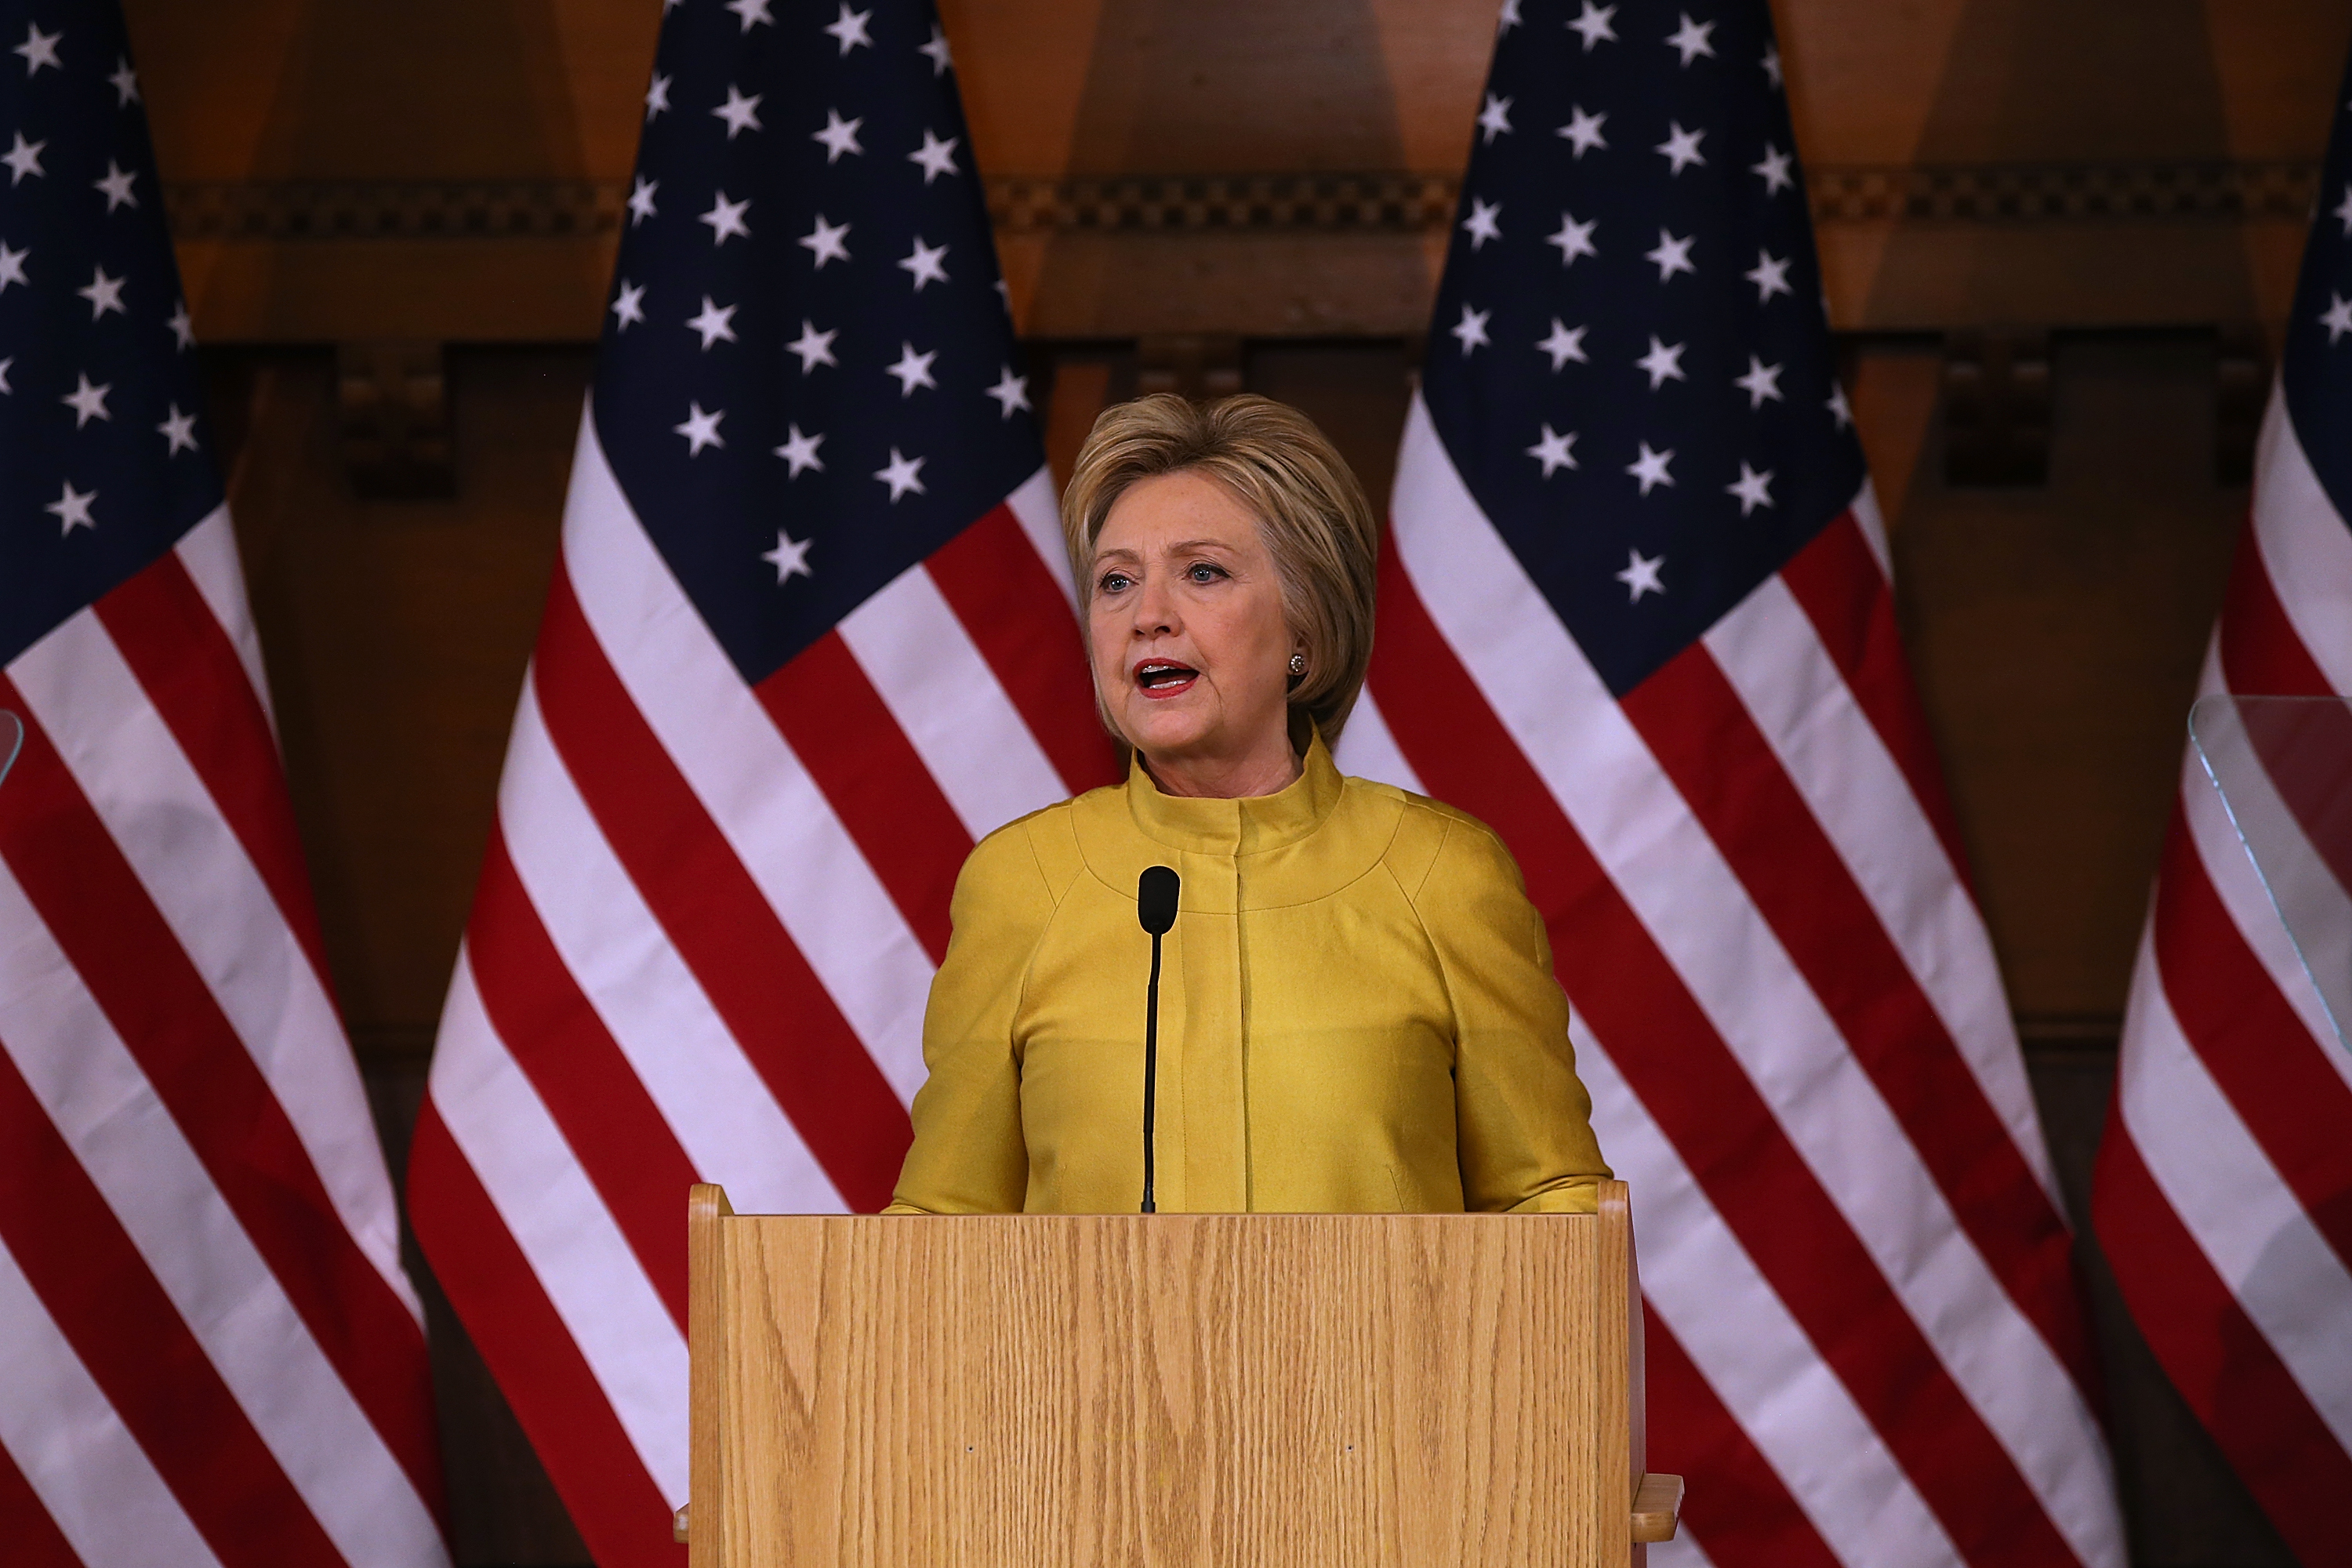 Hillary Clinton Says She's Not Interested in an Endorsement From Billionaire Charles Koch